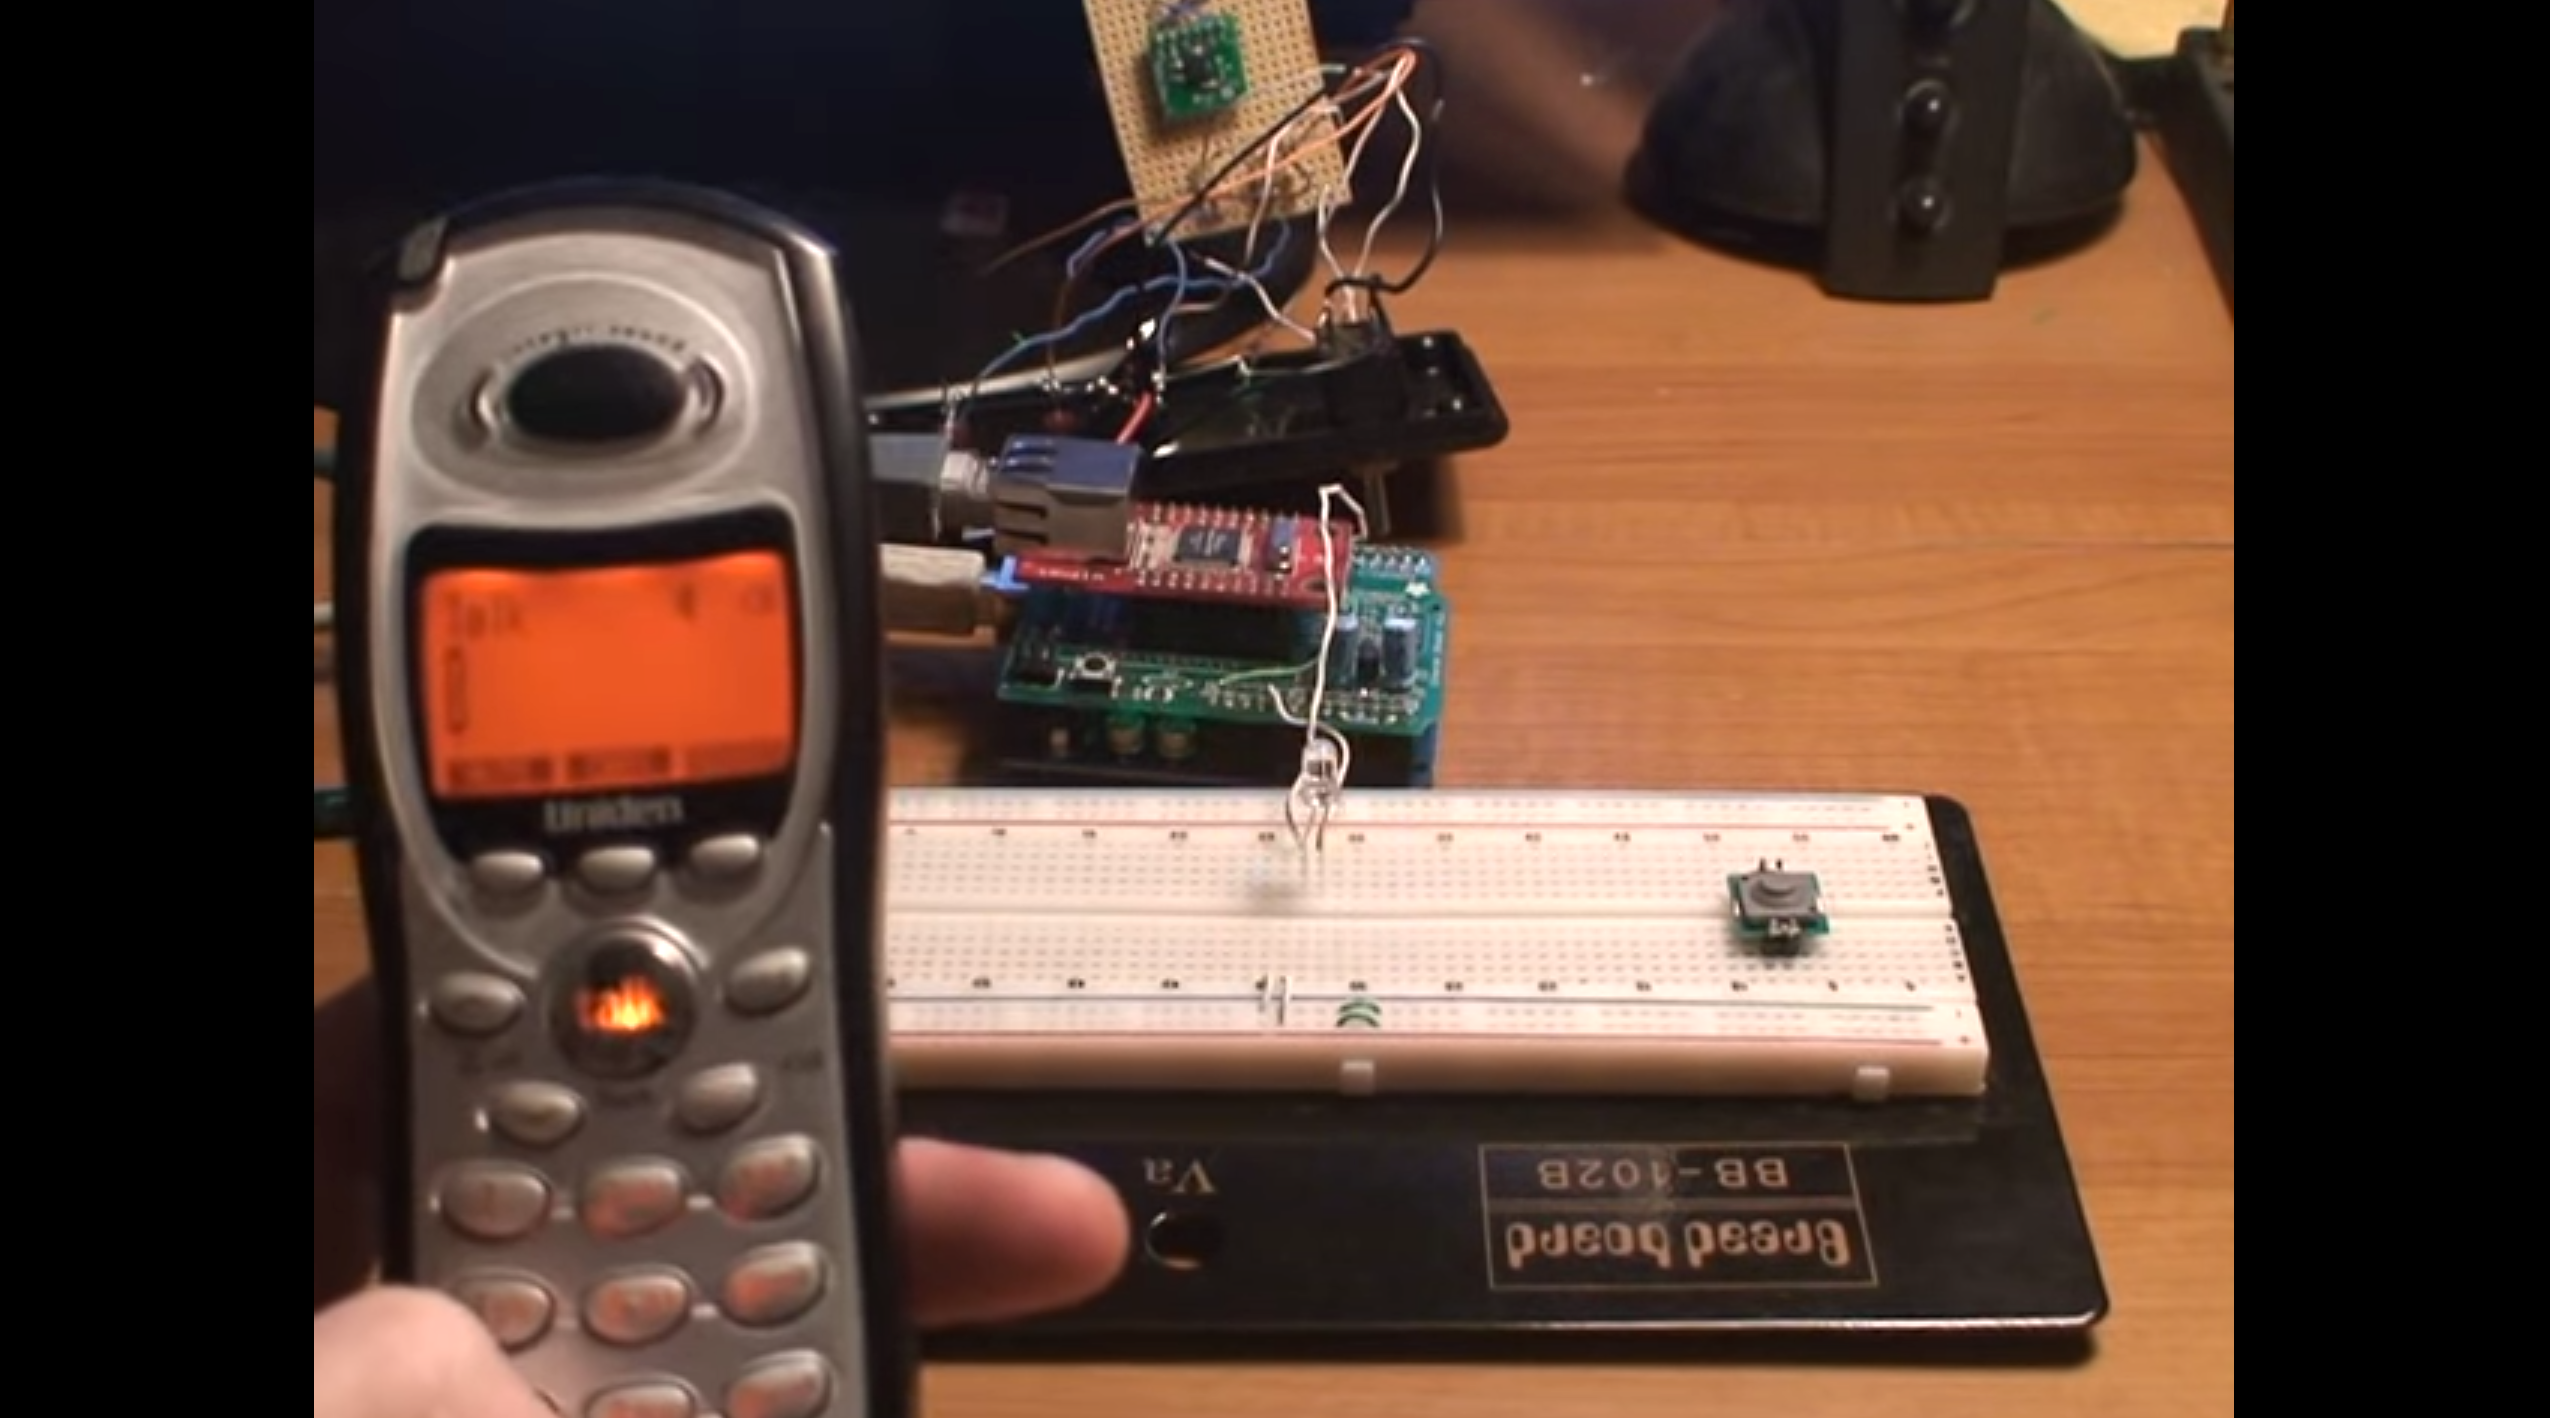 Using Asterisk to Control your Arduino